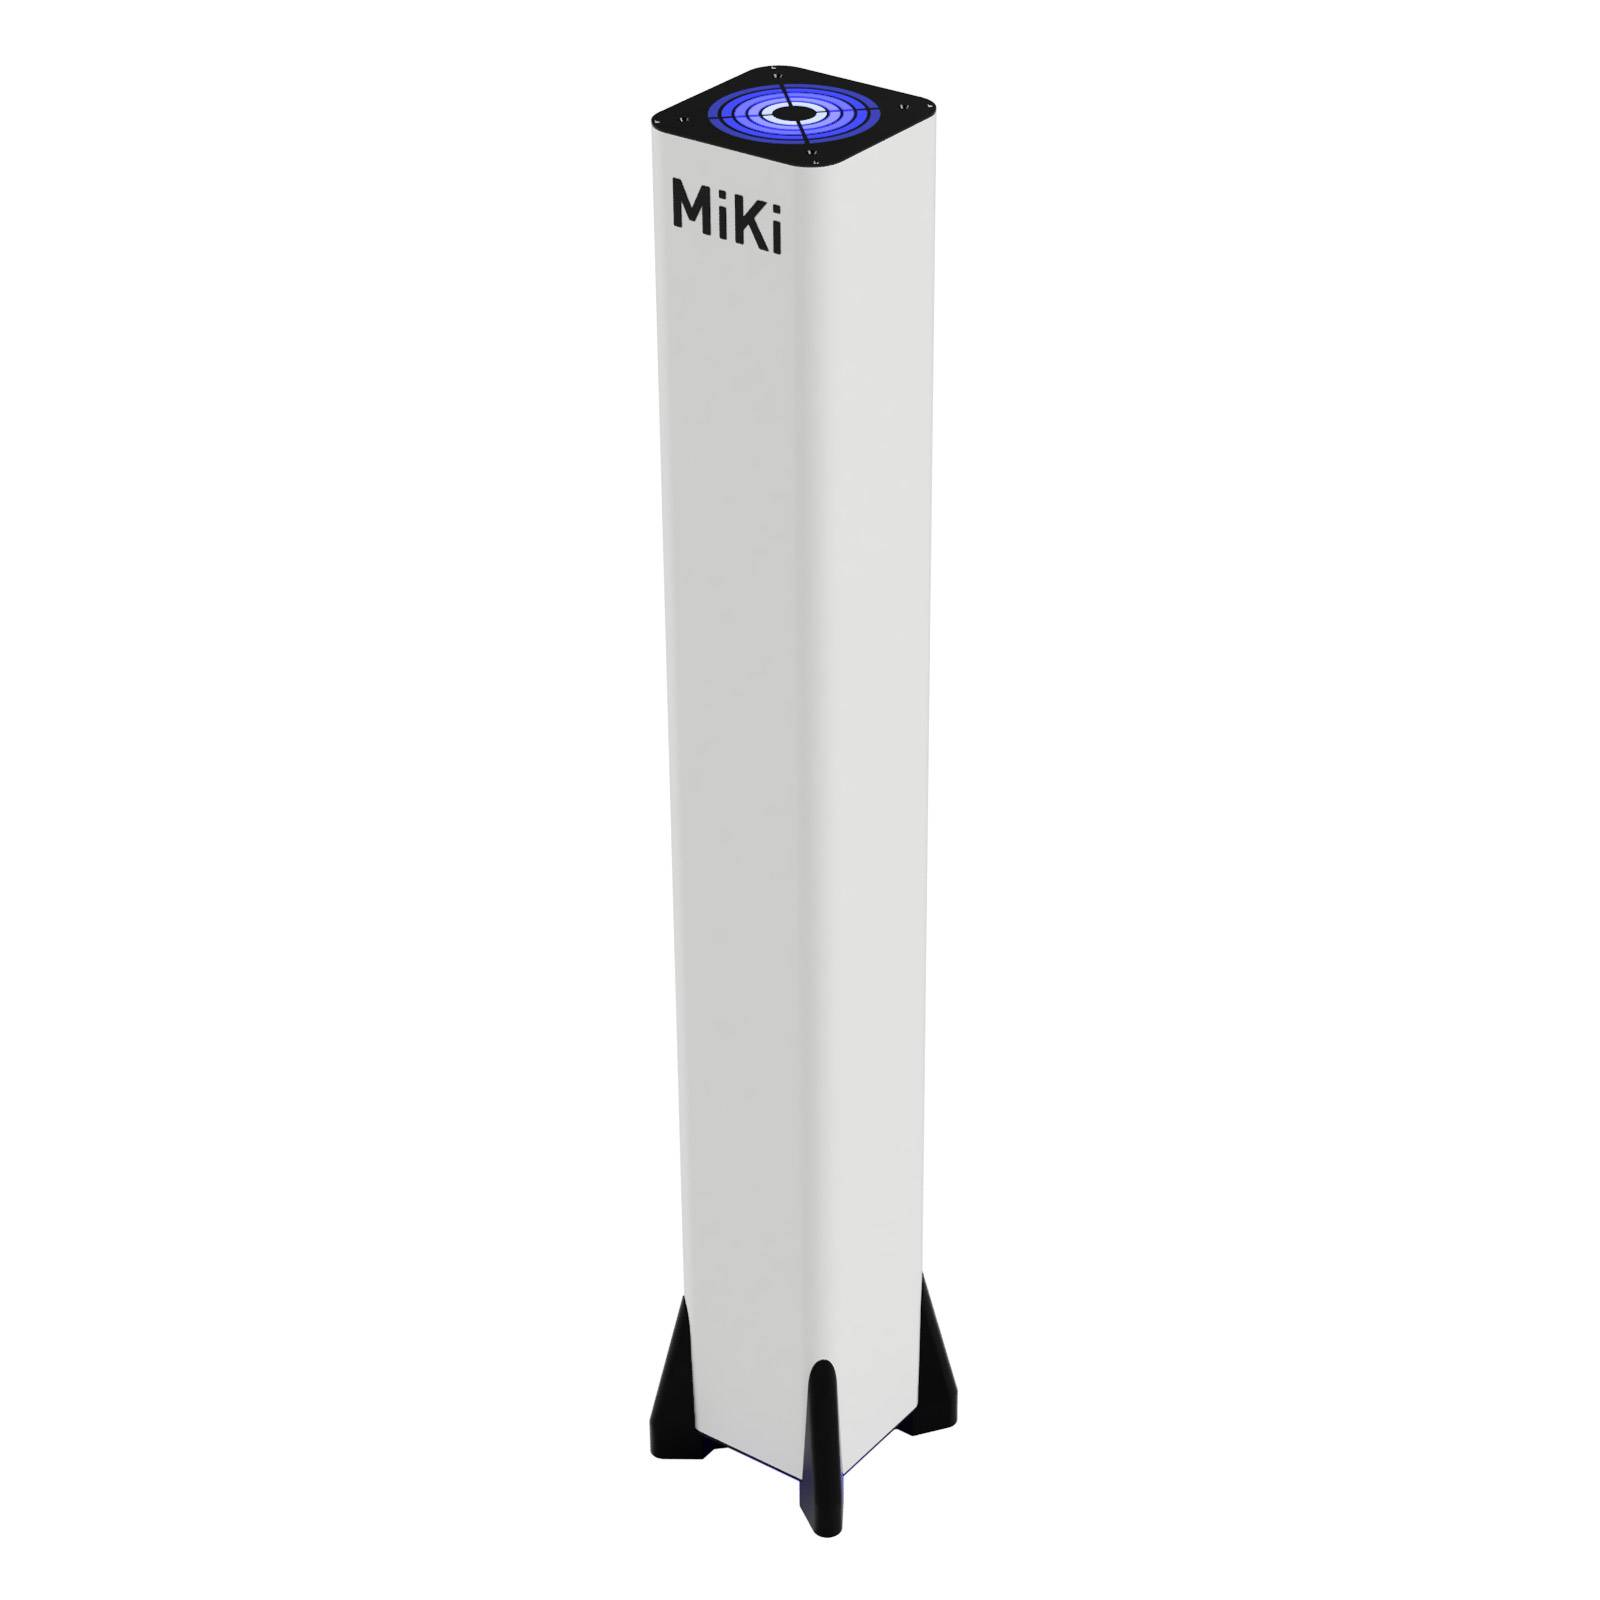 Rocket stand for MiKi UV-C air cleaner